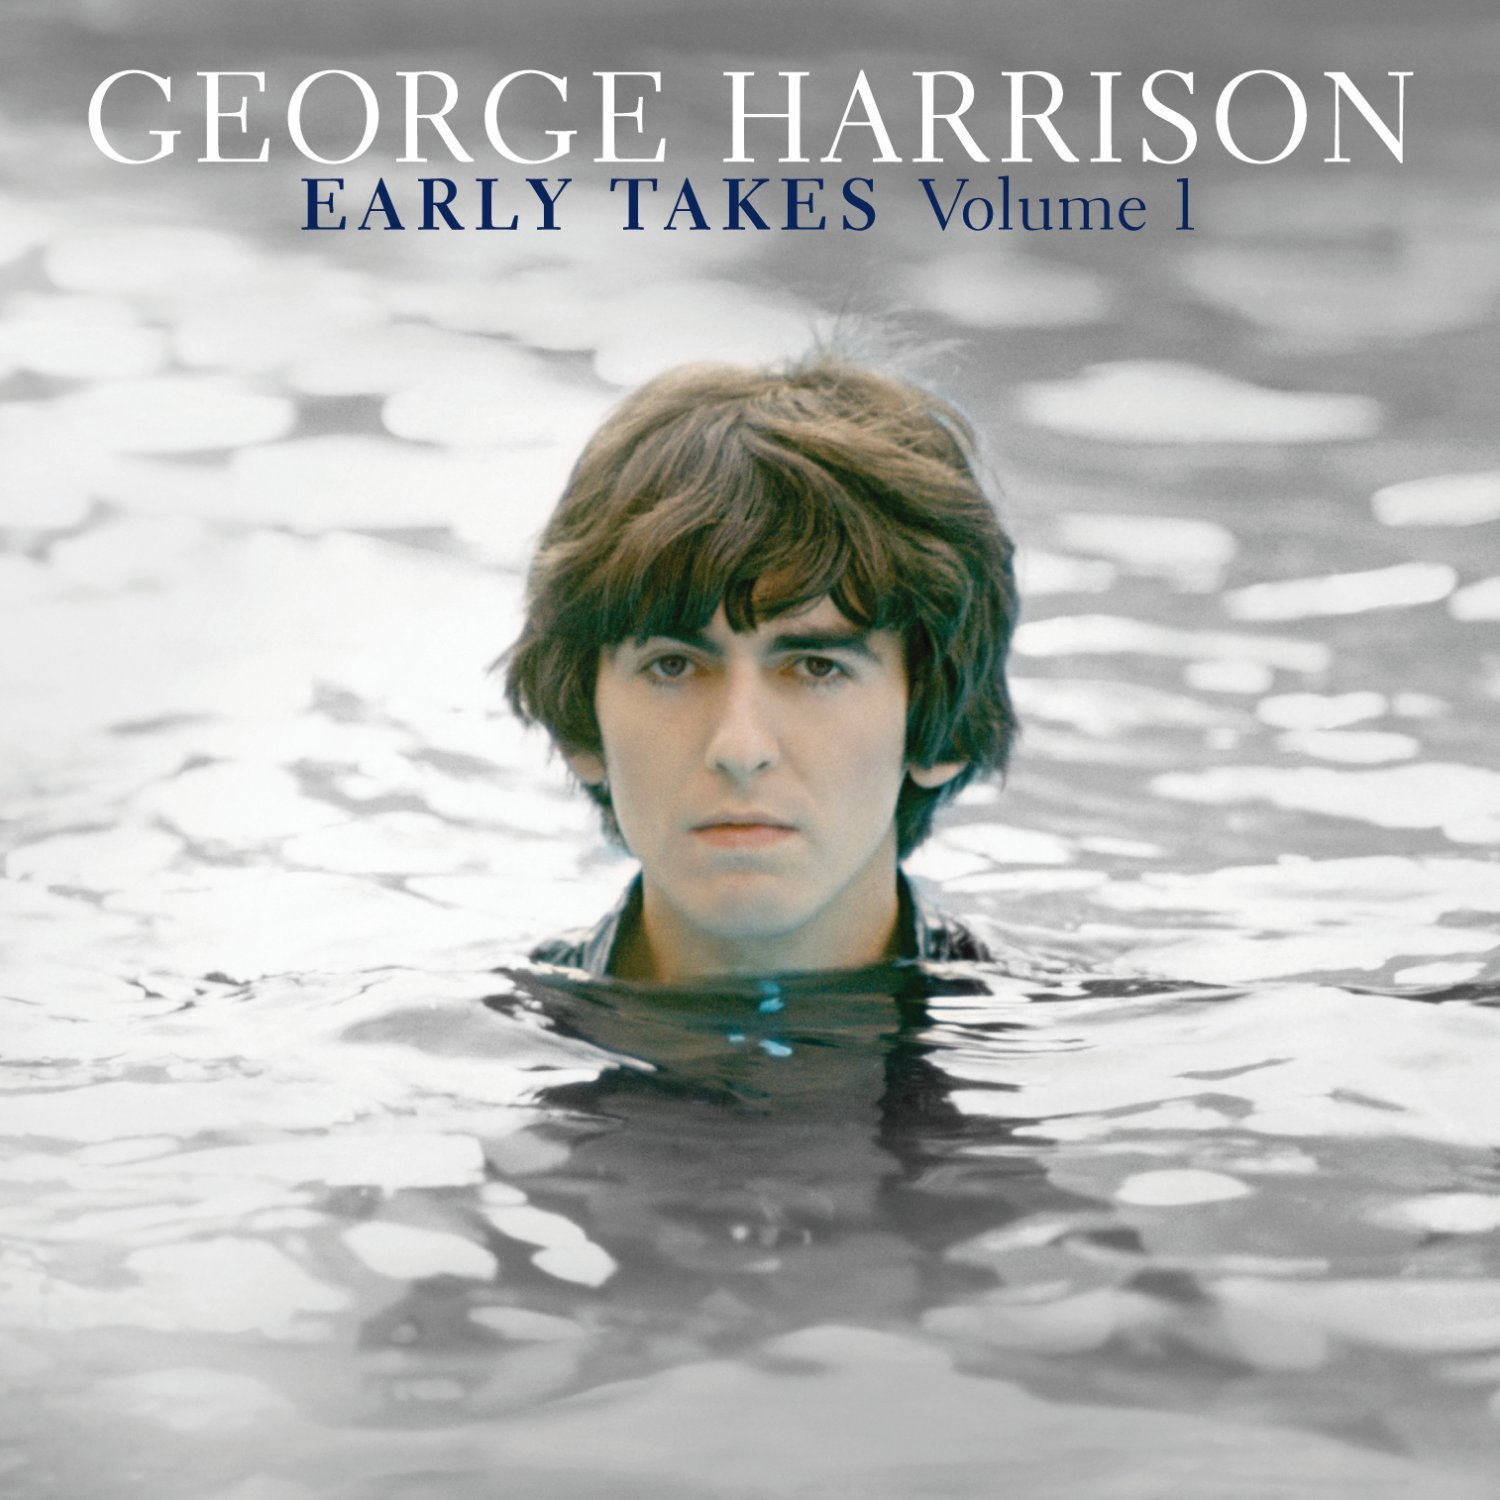 George Harrison - Early Takes Vol. 1